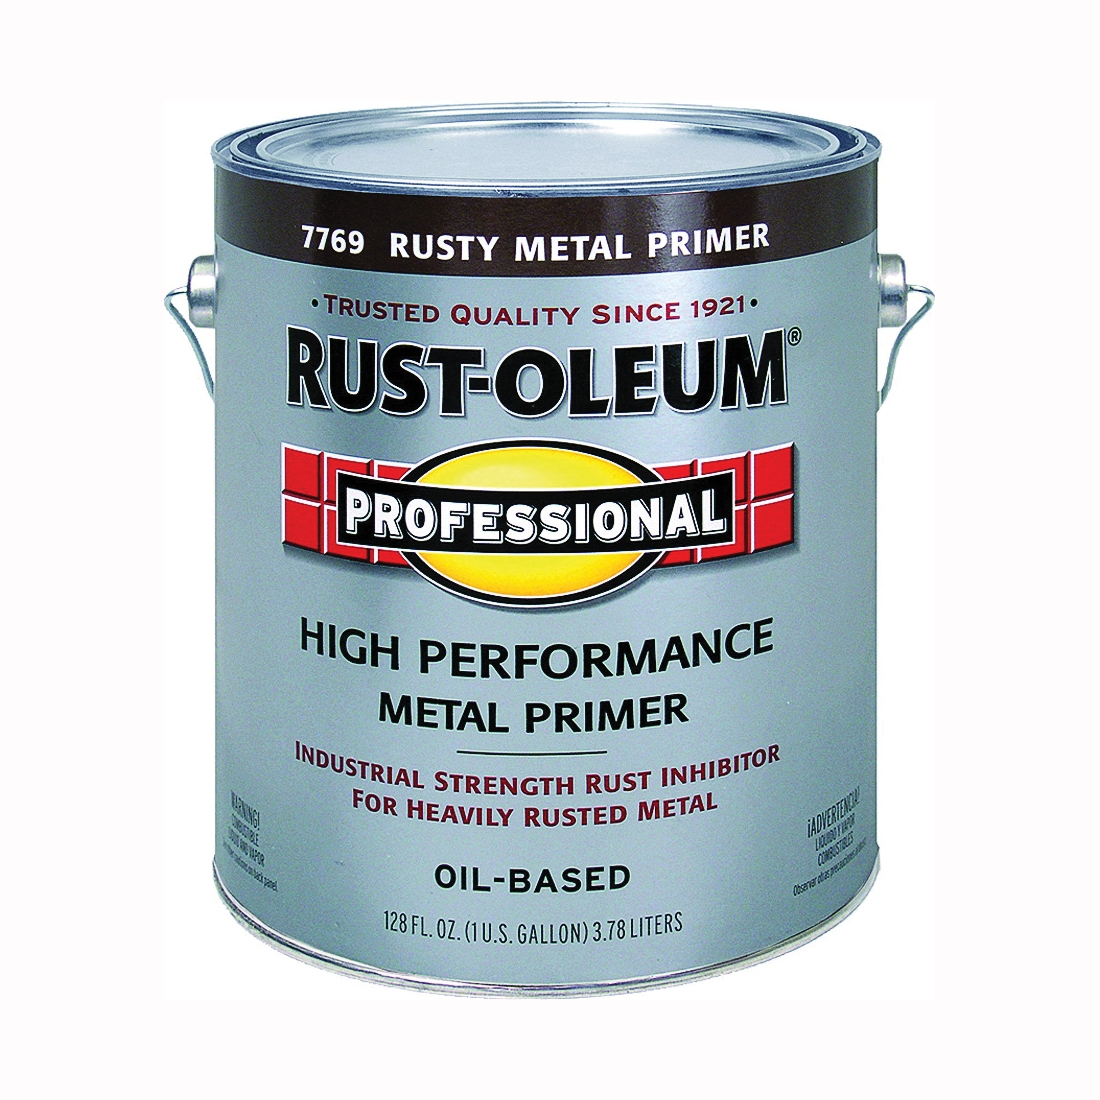 Picture of RUST-OLEUM PROFESSIONAL 7769402 Rusty Metal Primer, Flat, Flat Rusty Metal Primer, 1 gal